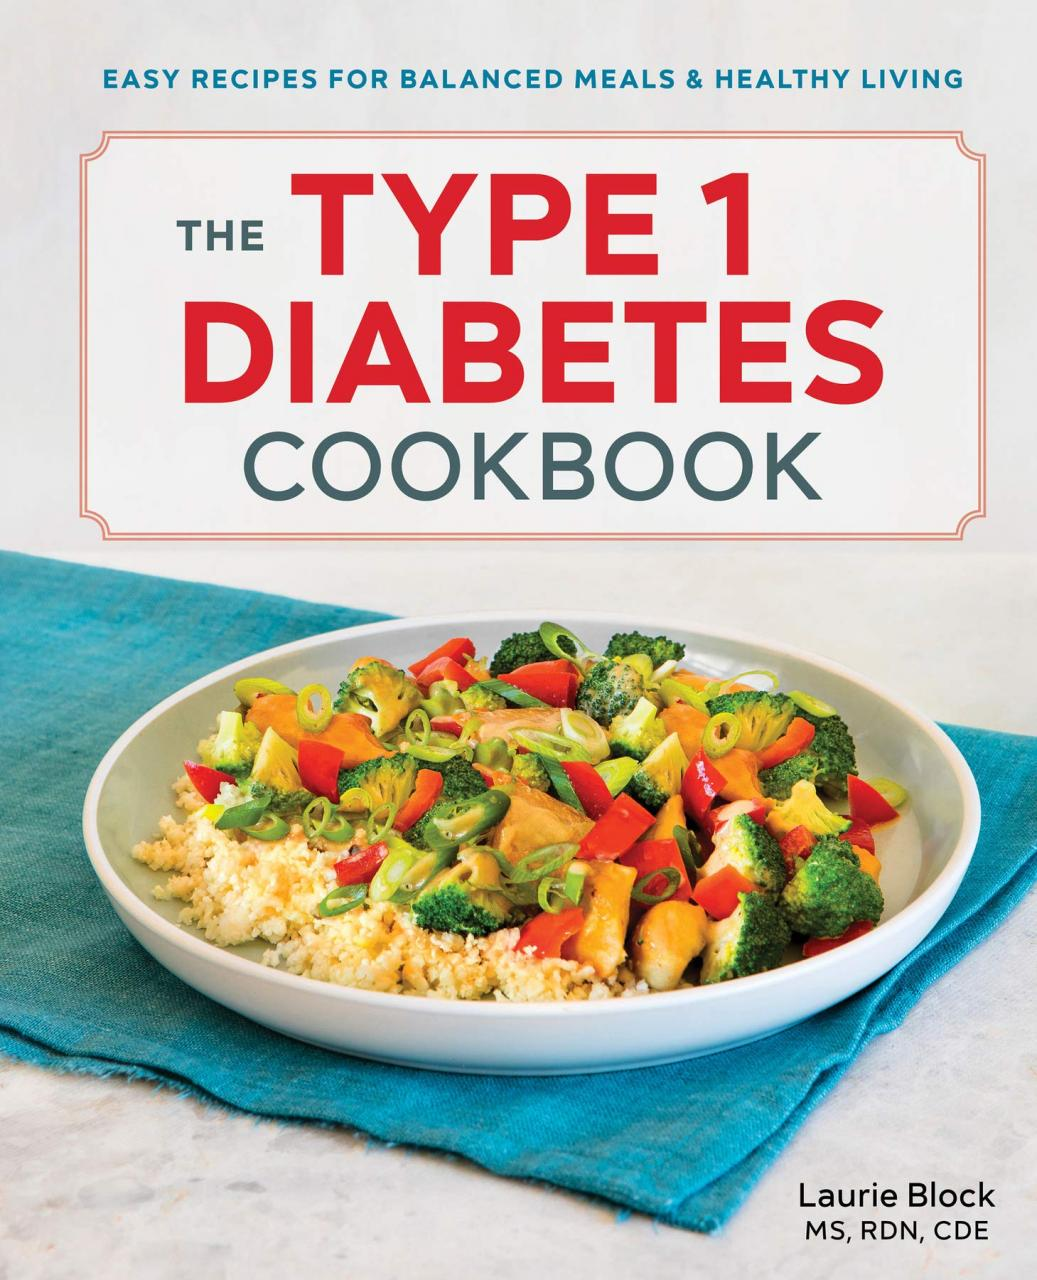 Low Carb for People with Type 1 Diabetes